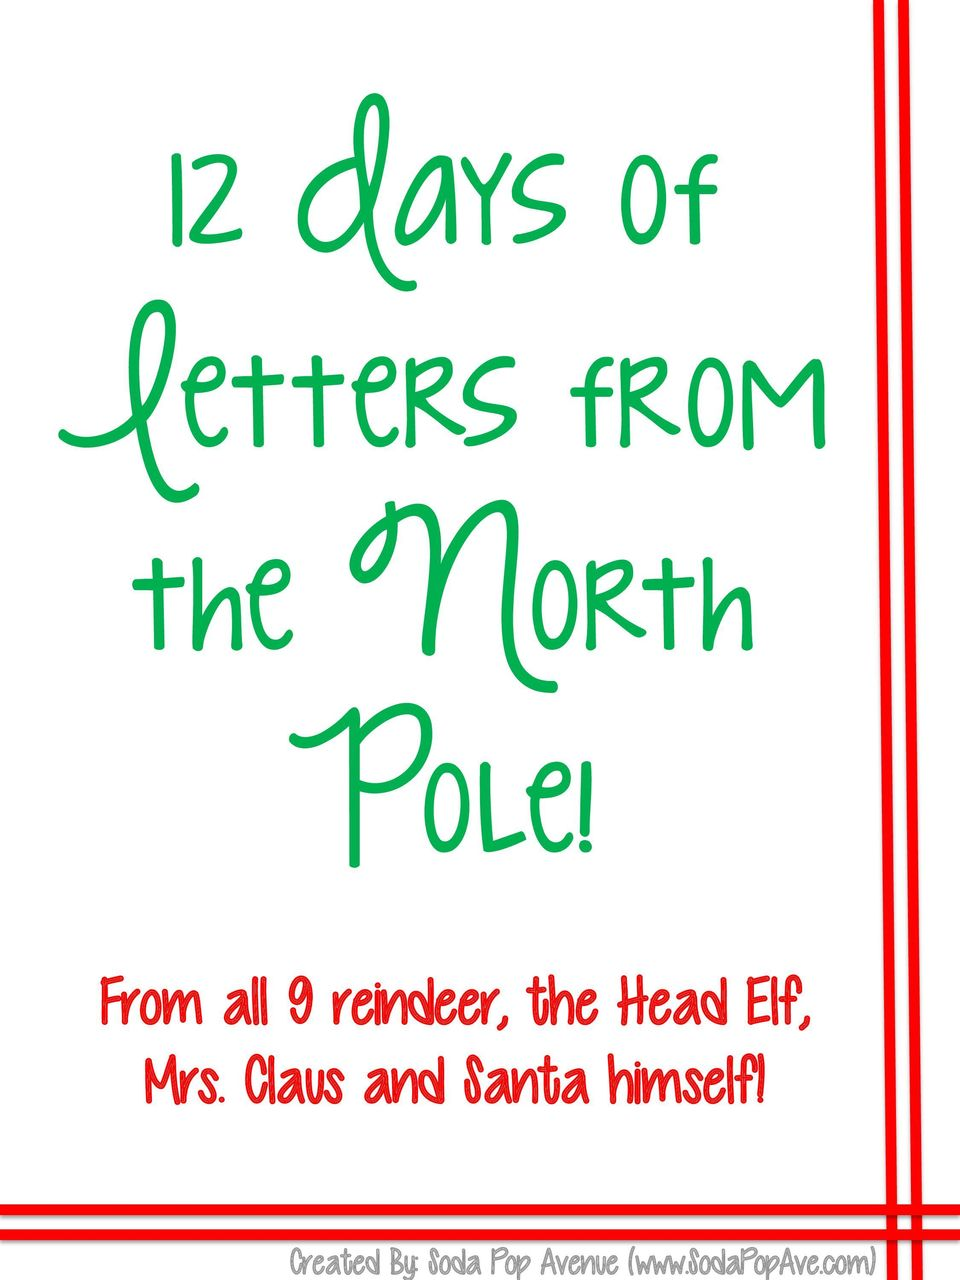 com) 12 Days of Letters from the North